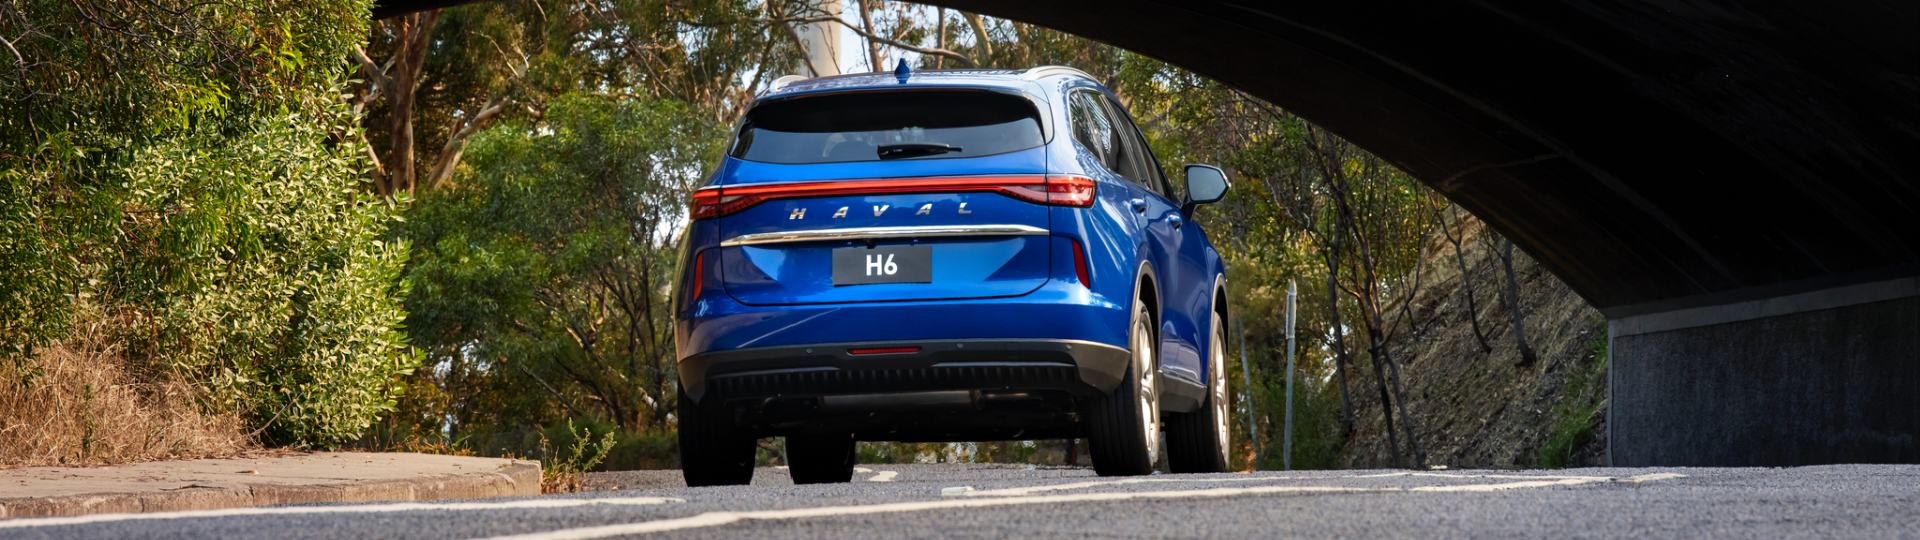 All-New Haval H6 SUV for sale in Perth